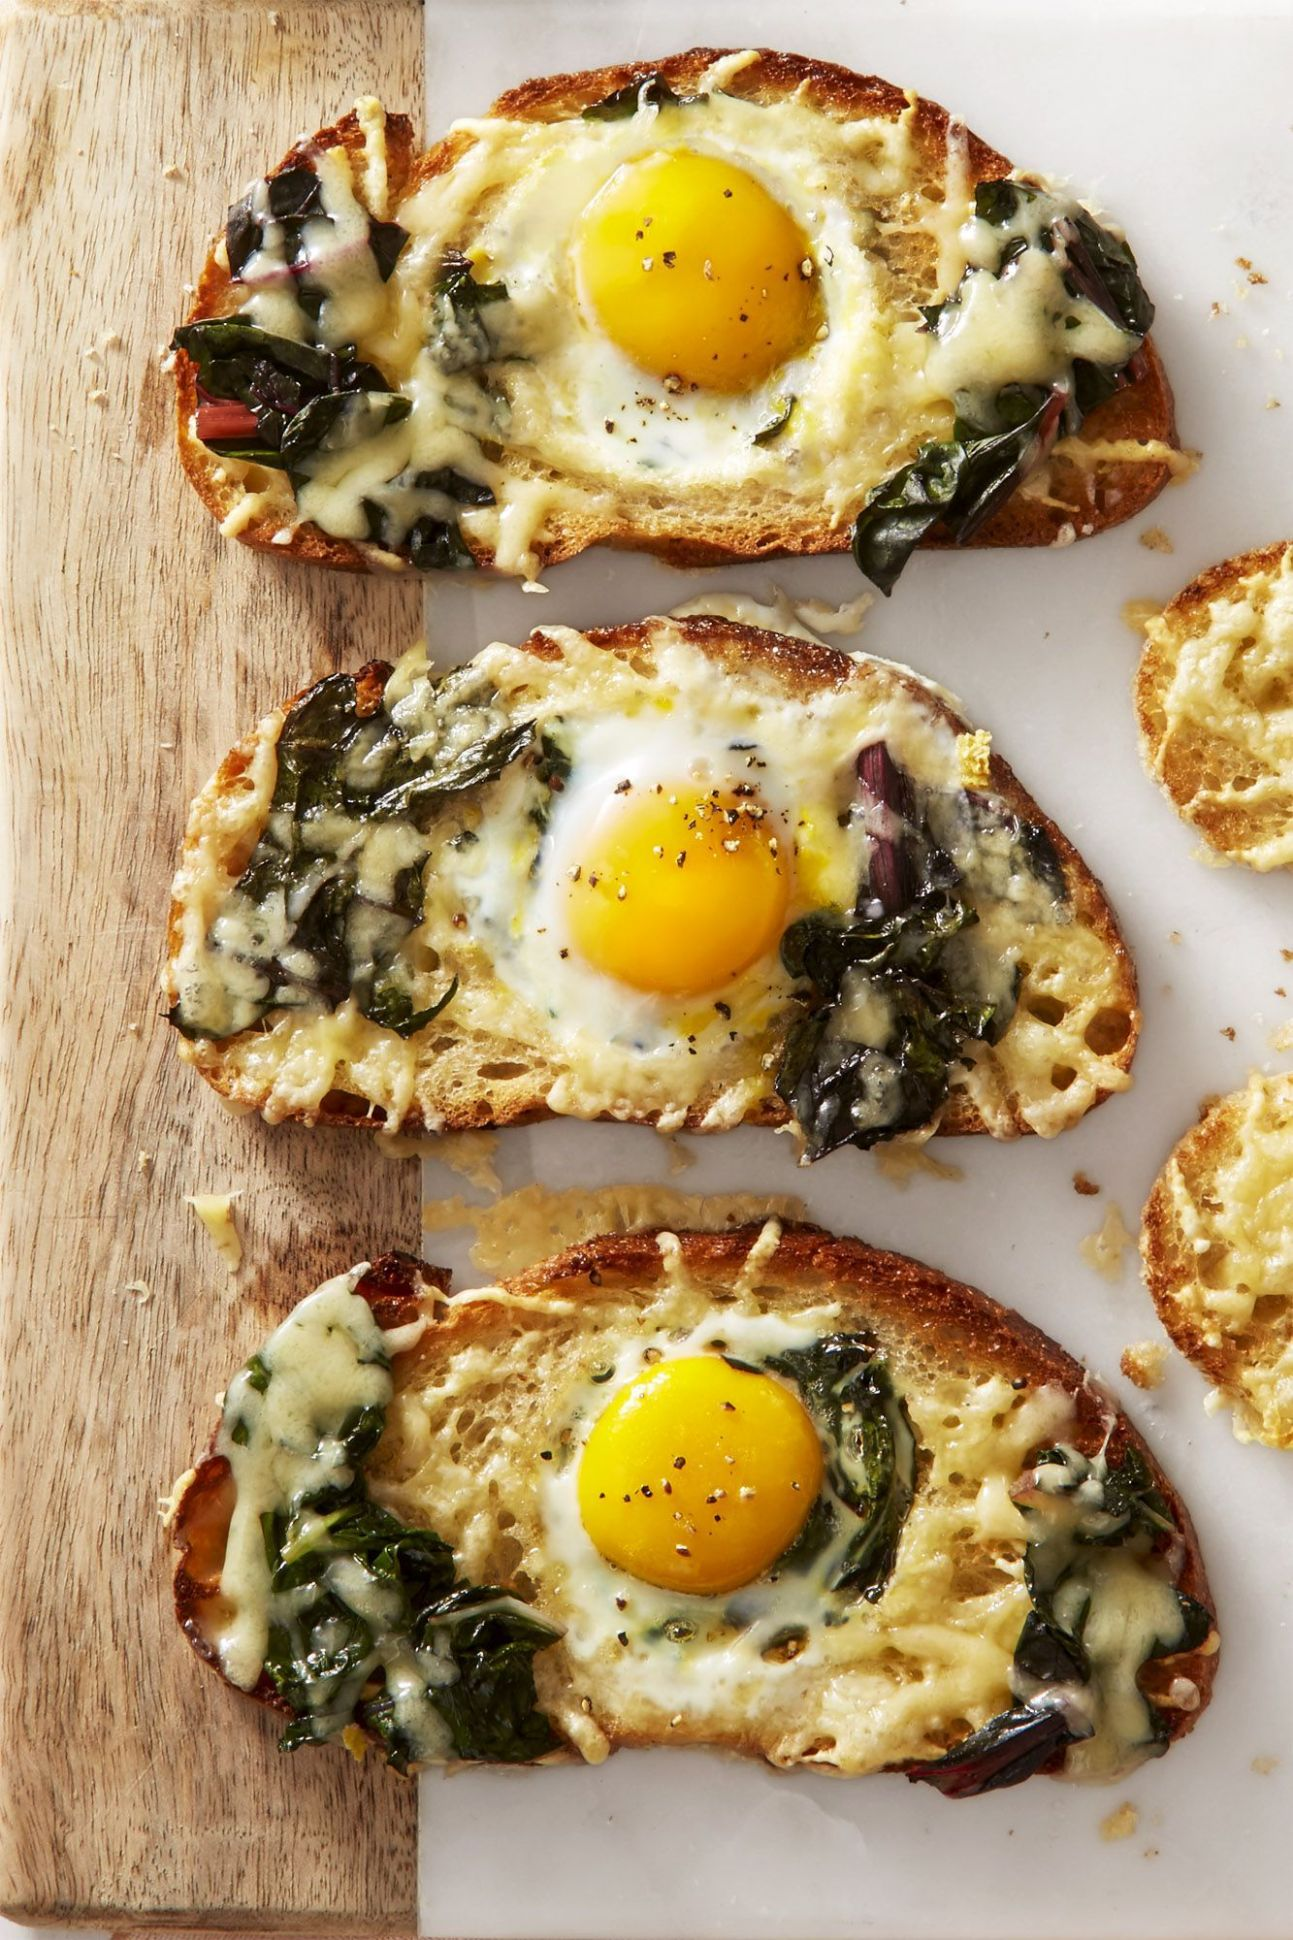 8+ Easy Egg Recipes - Ways to Cook Eggs for Breakfast - Easy Recipes Eggs